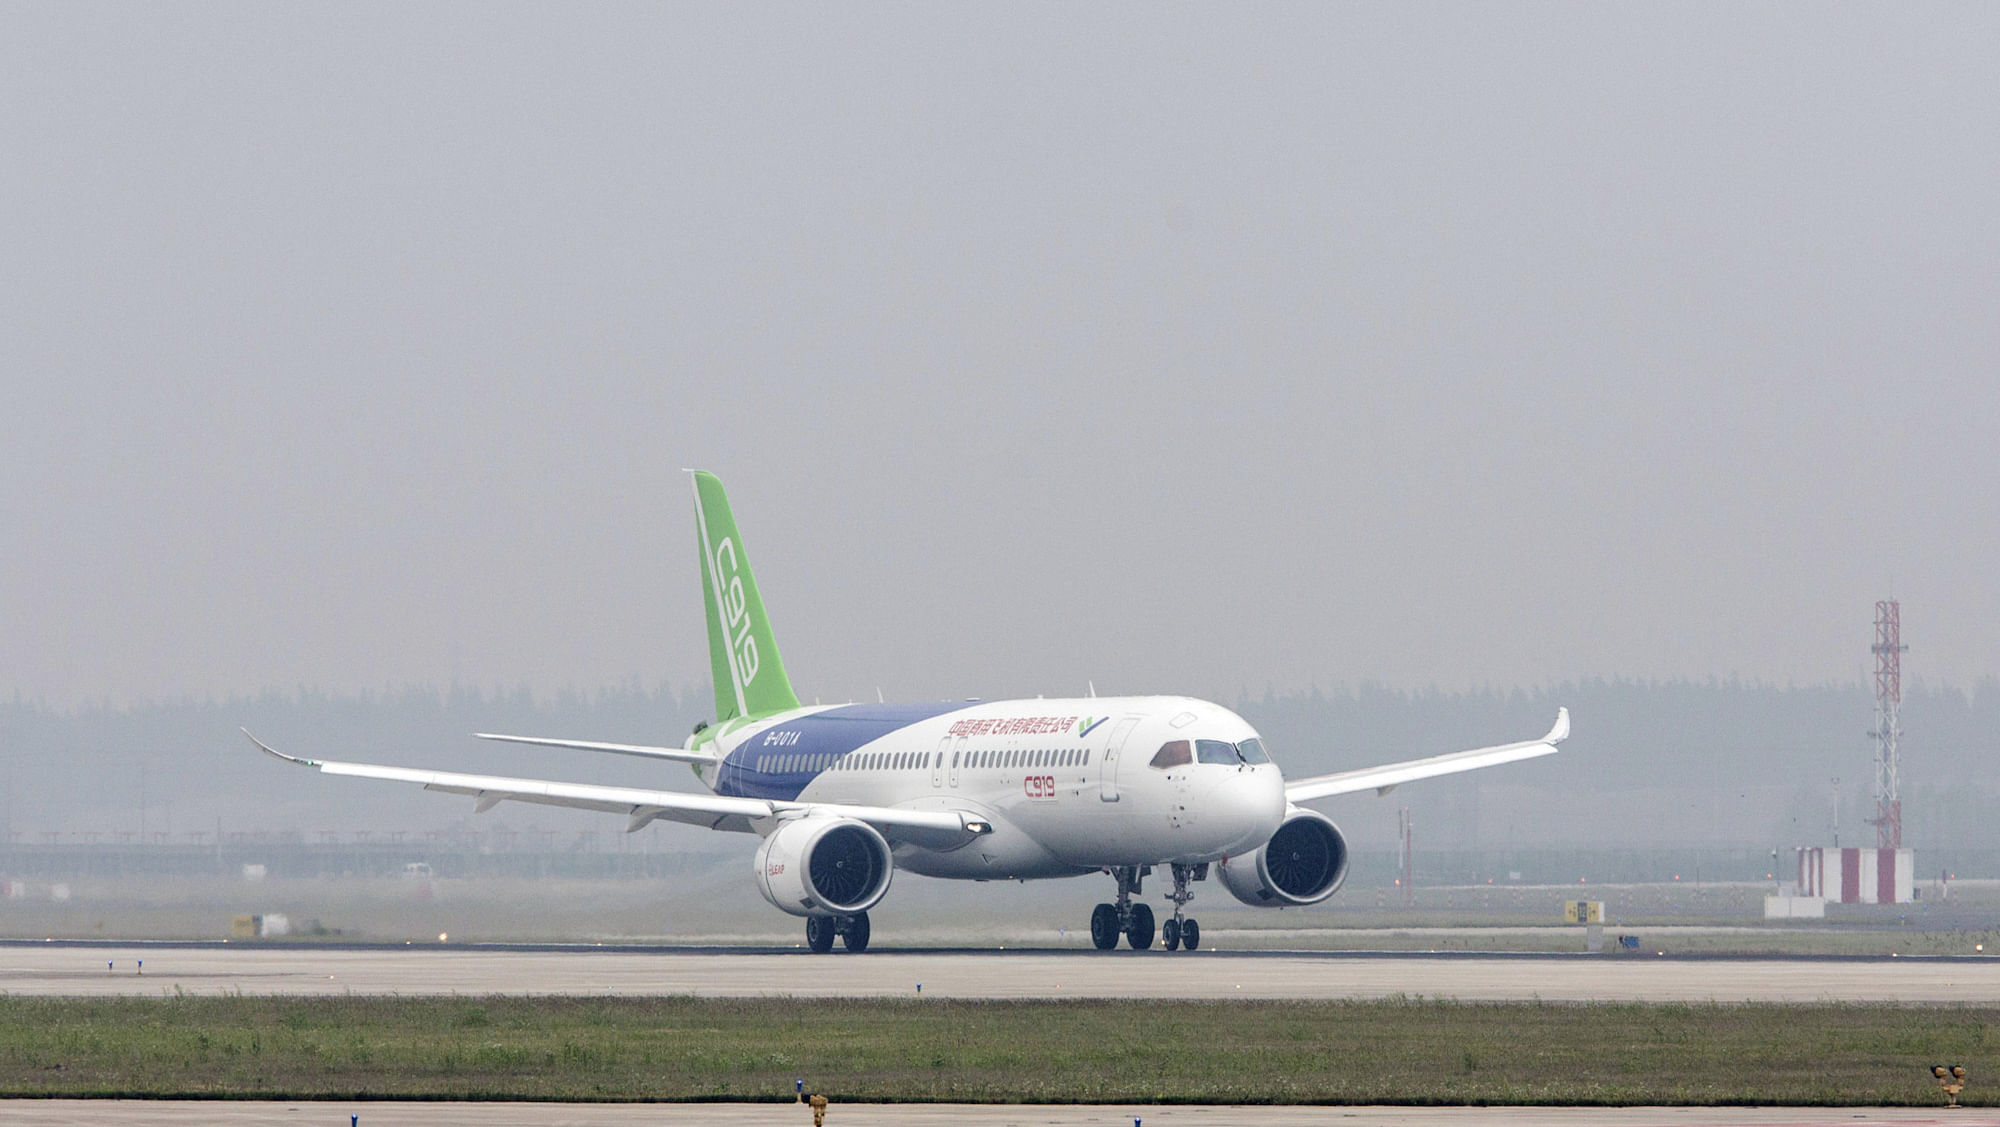 China's challenger to Boeing, Airbus to finally begin deliveries by 2021-end